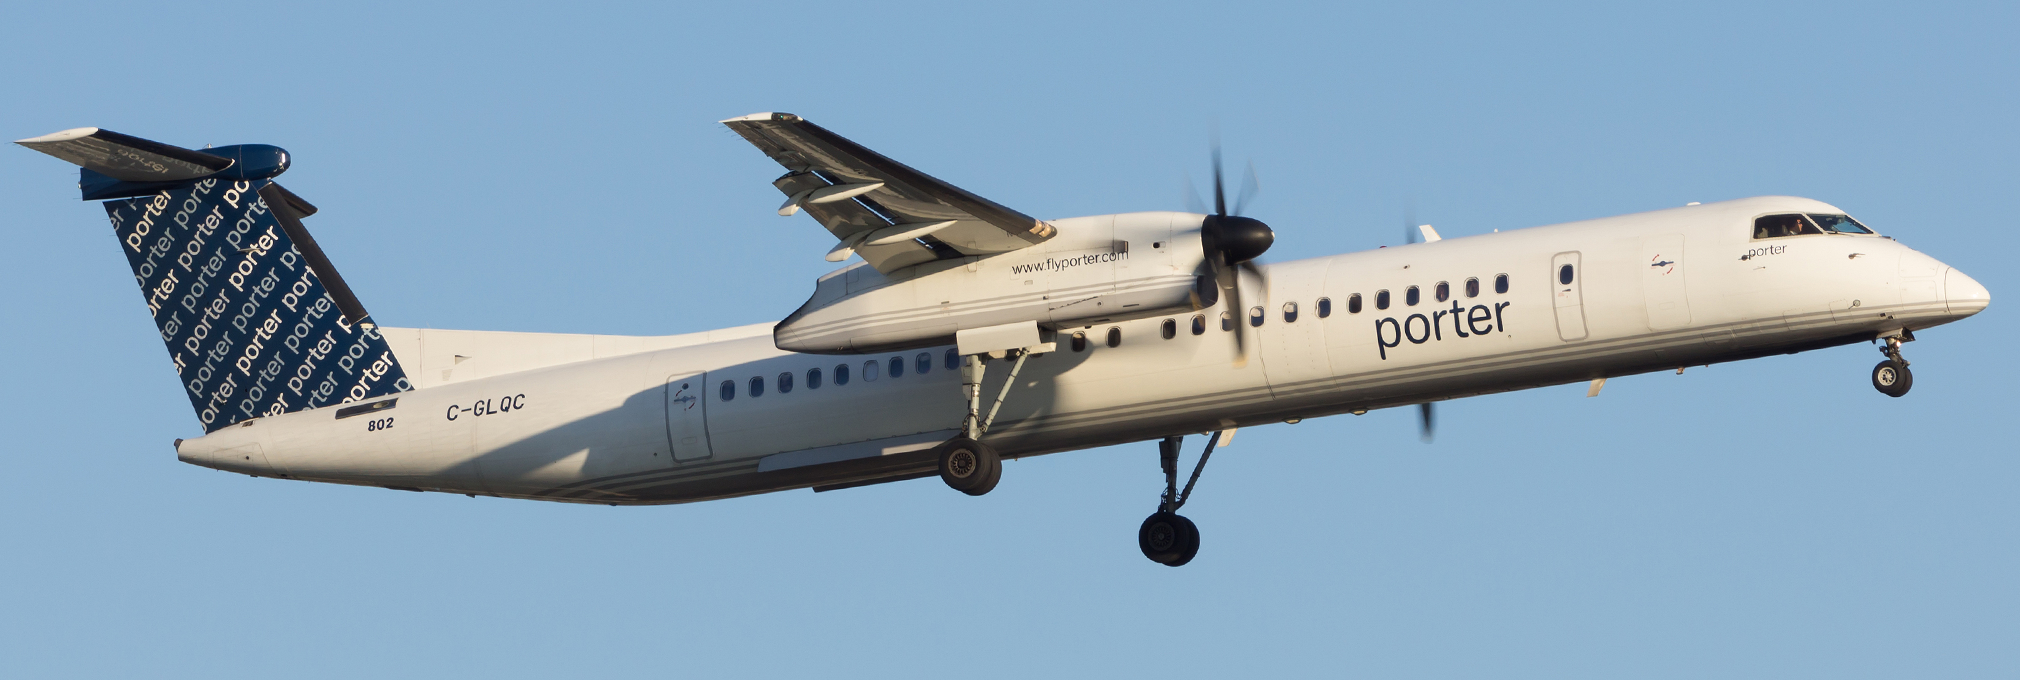 Porter airlines ratings and flights tripadvisor - Porter airlines book flights ...